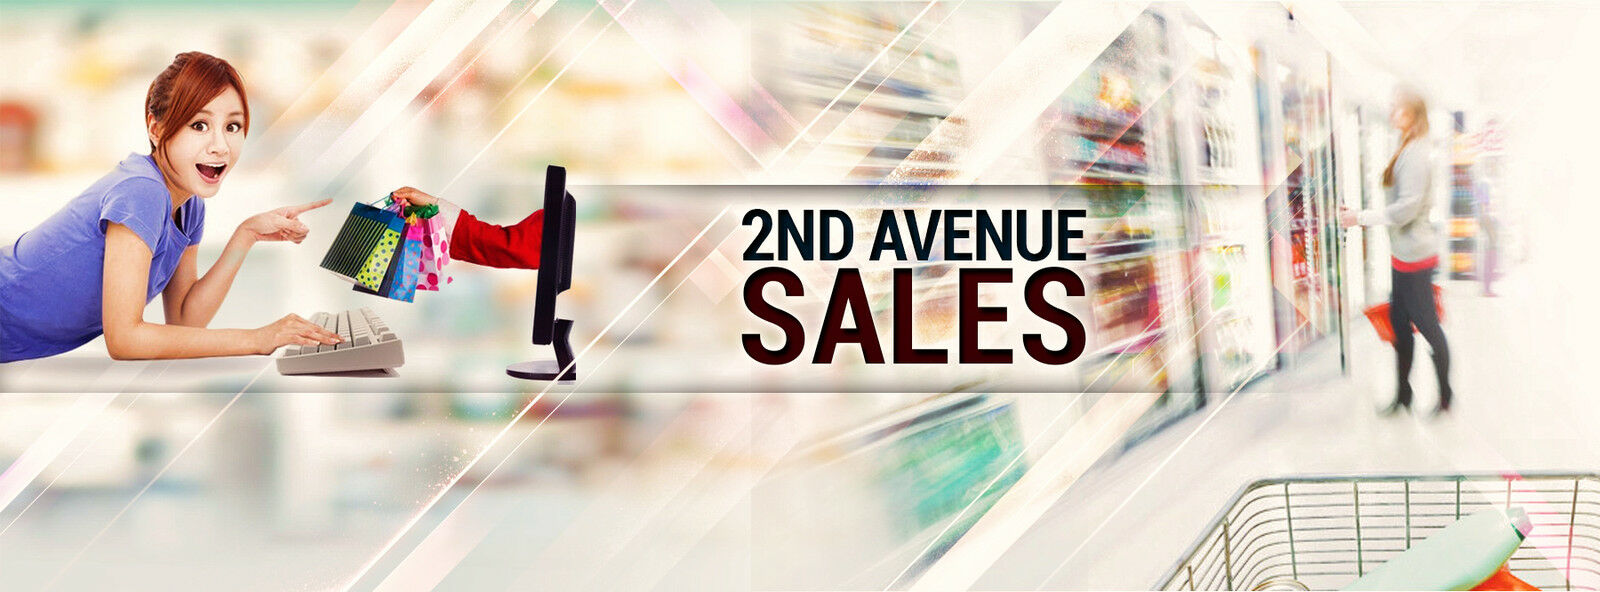 2nd Avenue Sales